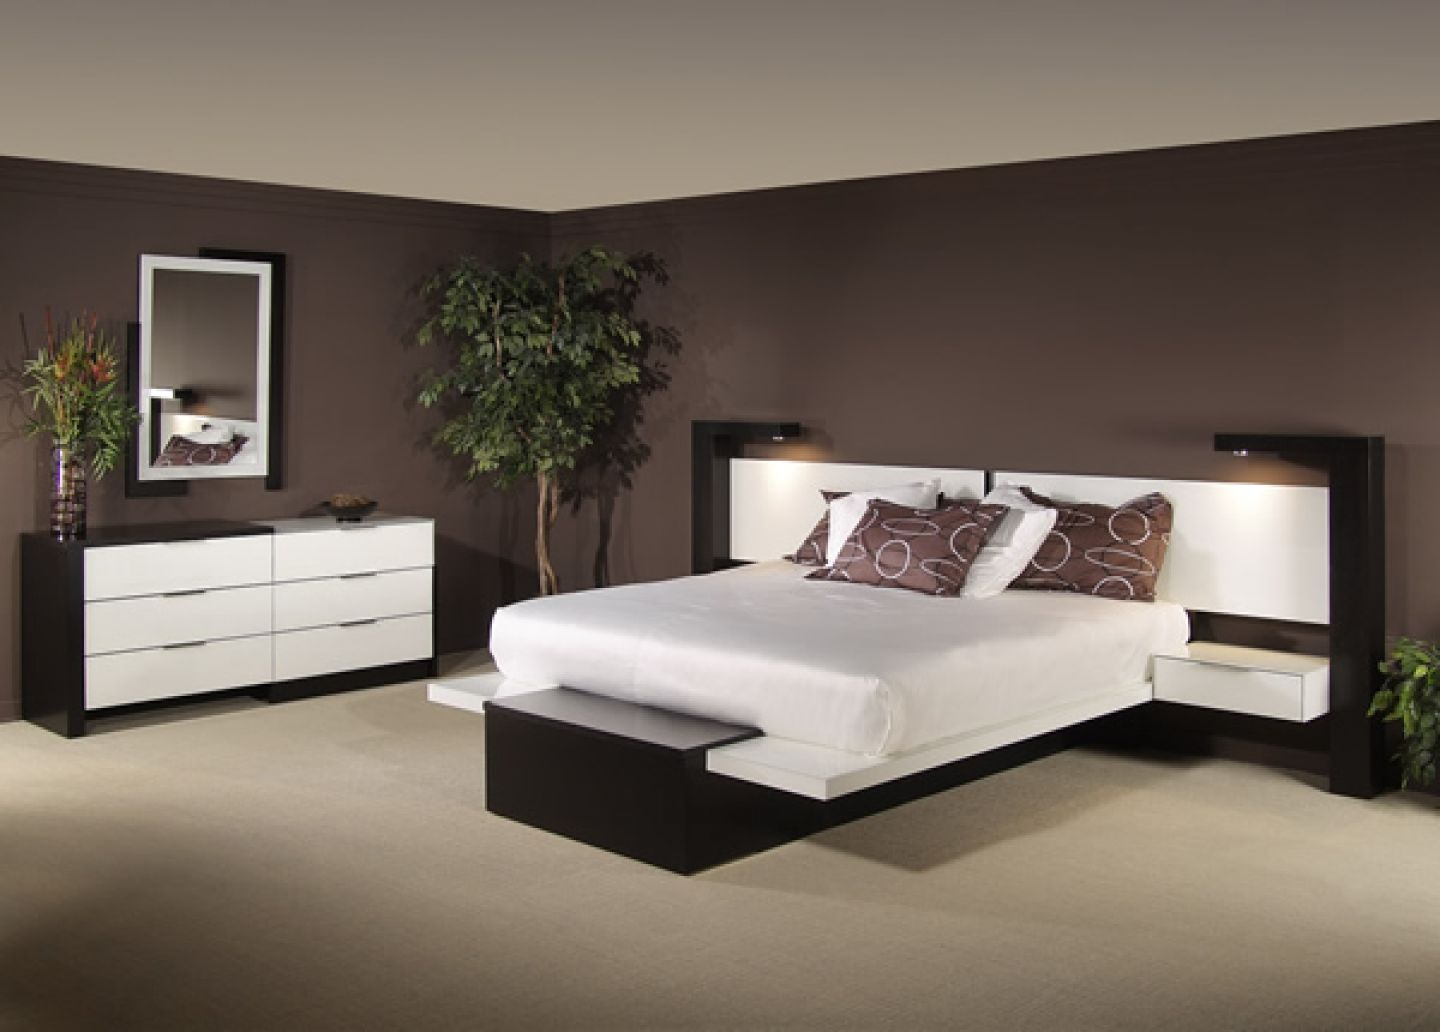 Contemporary Furniture Designs Ideas. Contemporary Furniture Designs Ideas   Bedroom furniture